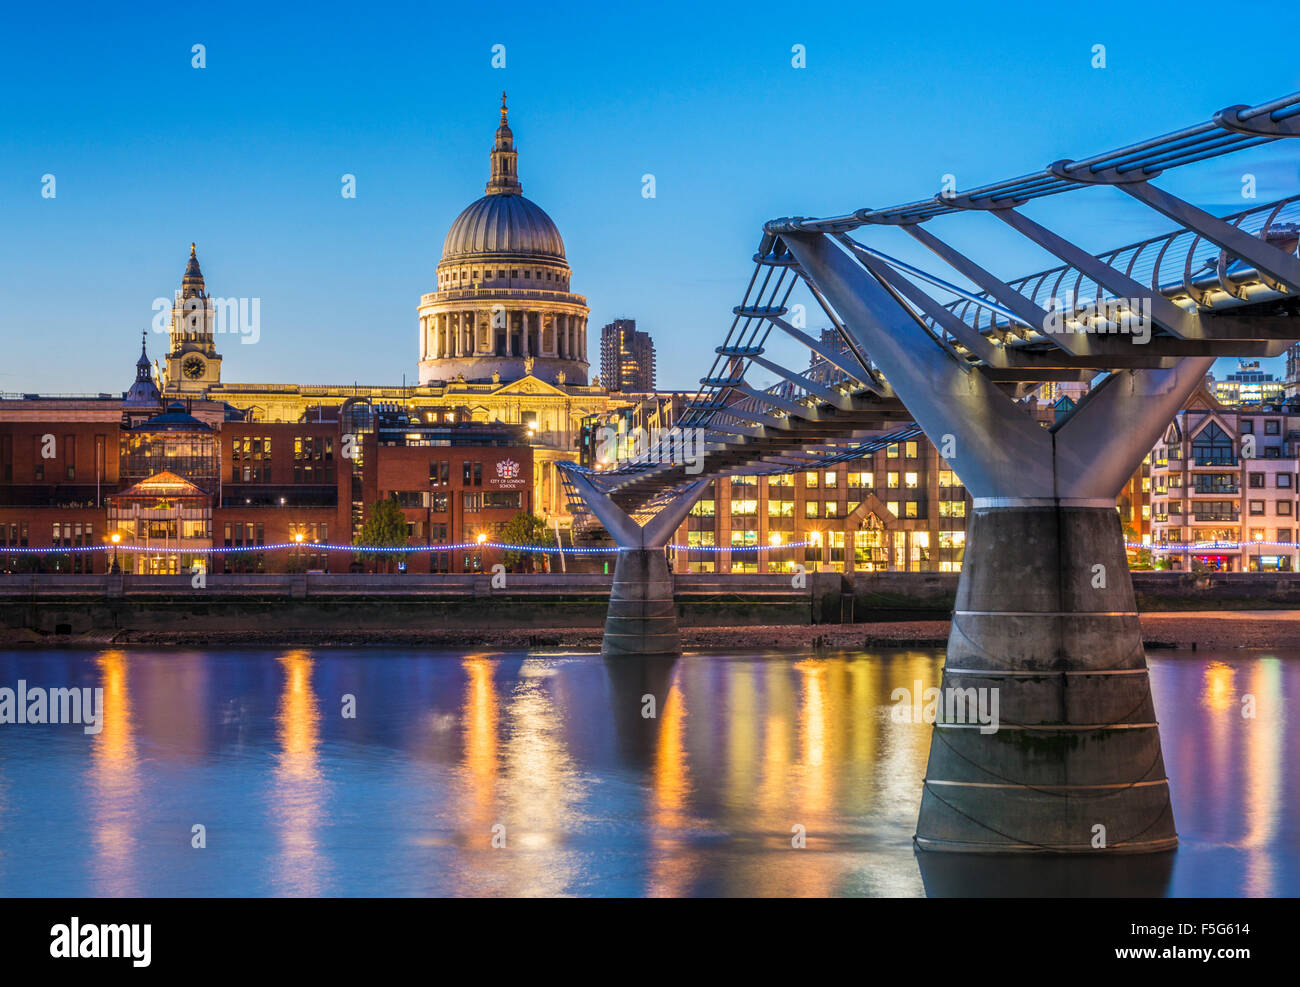 St Pauls cathedral millennium bridge and City of London skyline at night River Thames City of London UK GB EU Europe - Stock Image